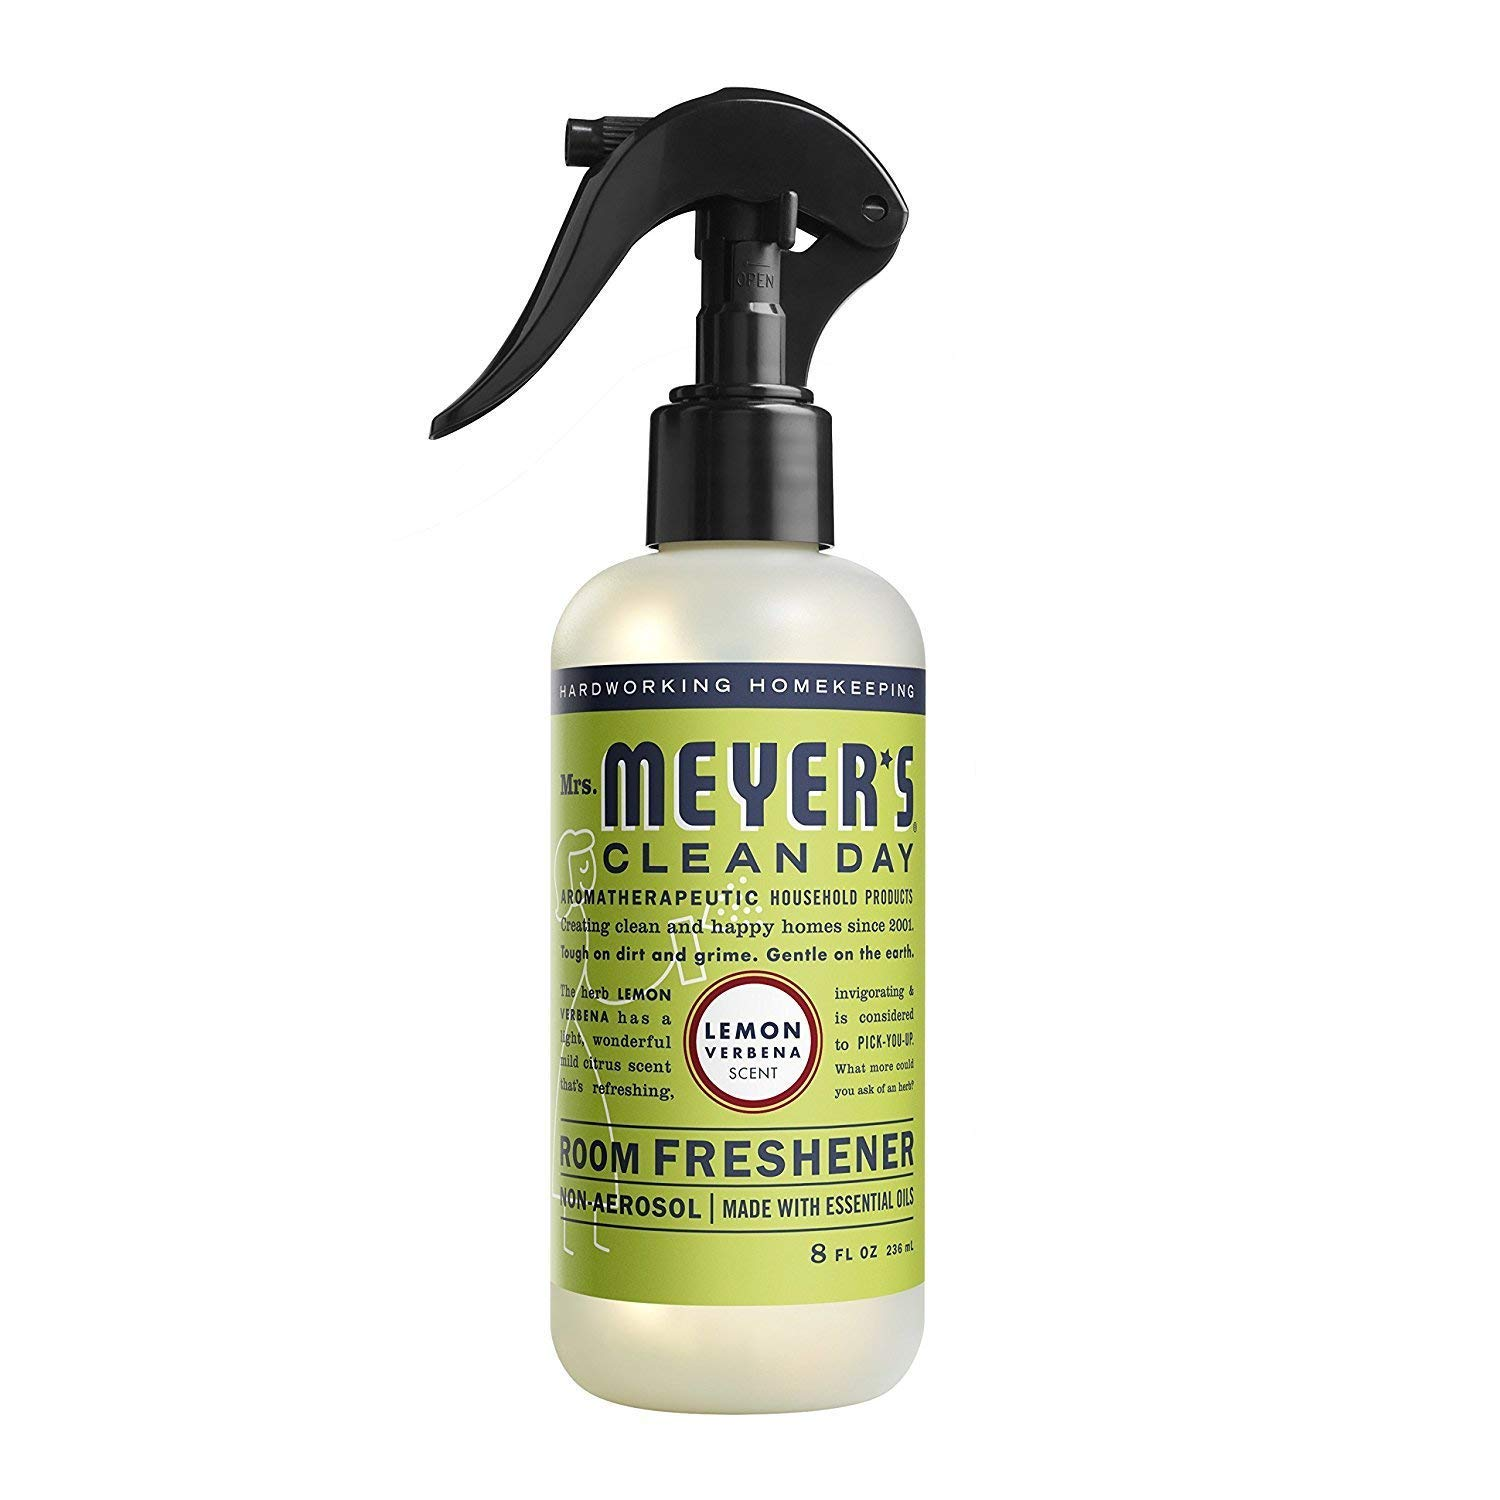 Mrs. Meyer's Room Freshener, 8 OZ (Lemon Verbena, Pack - 3)